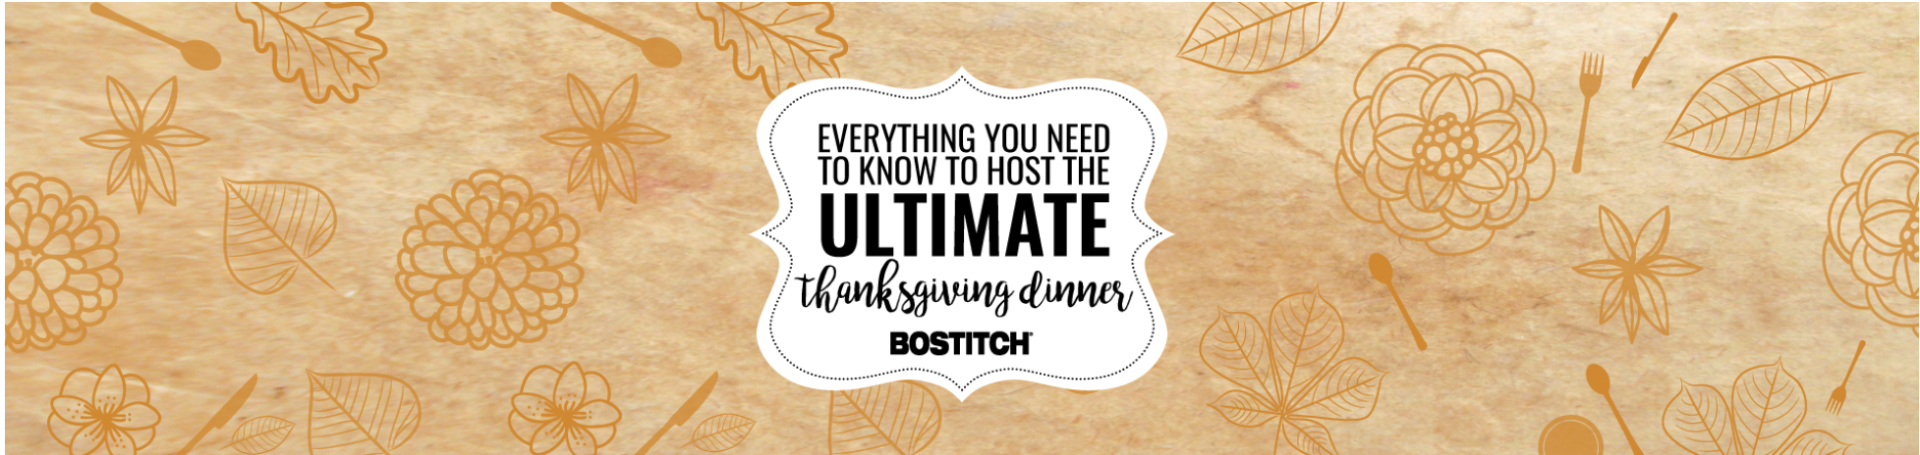 How to Host the Ultimate Thanksgiving Dinner